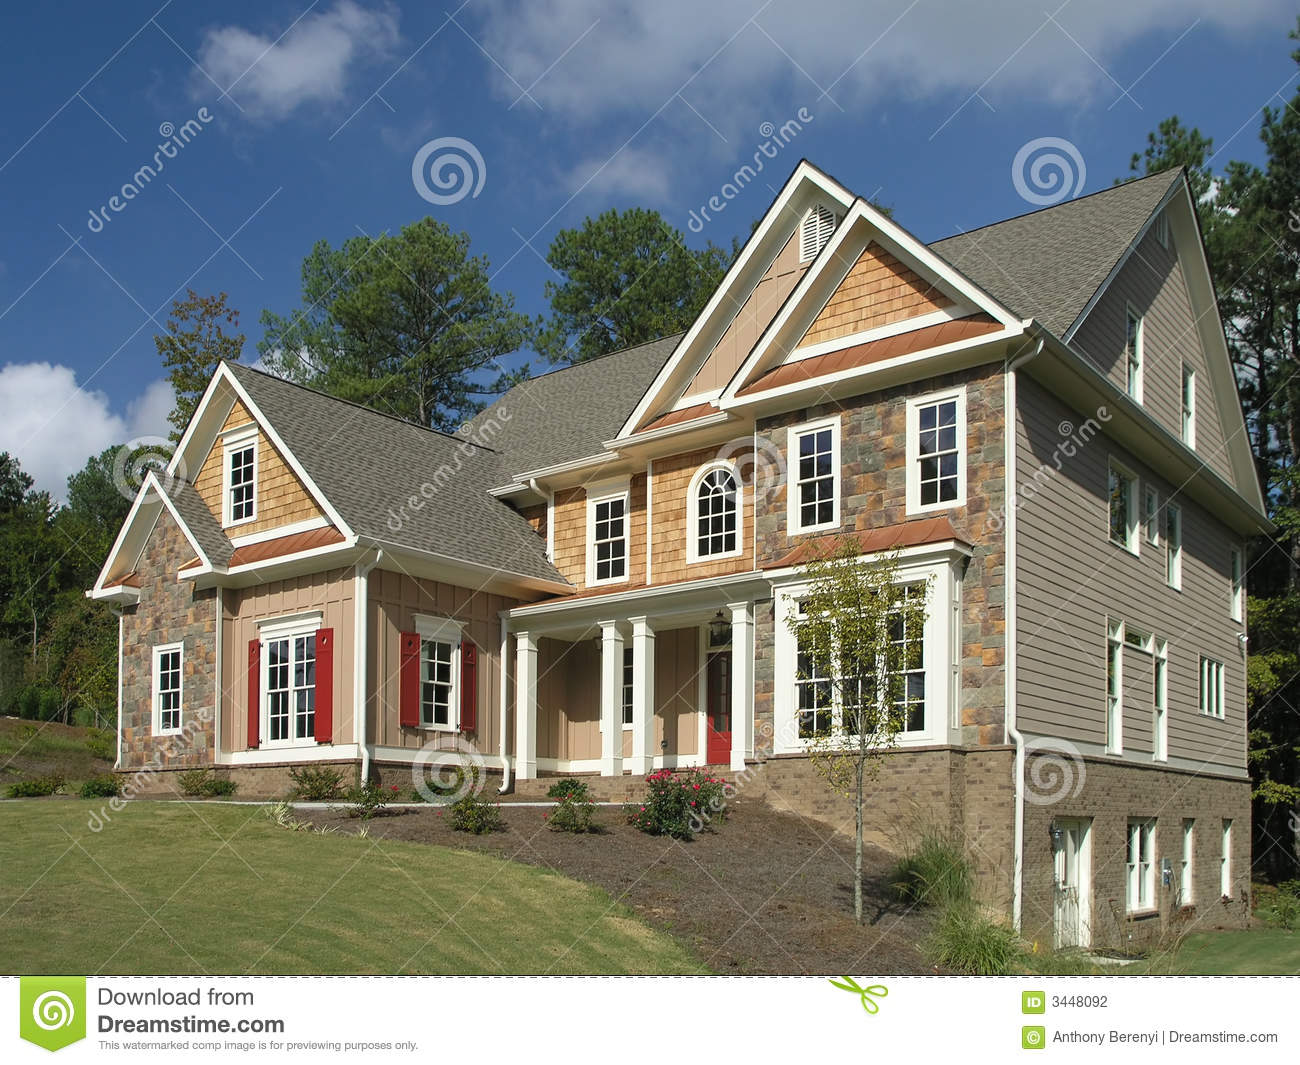 Luxury Home Exterior 31 Stock Photography Image 3448092